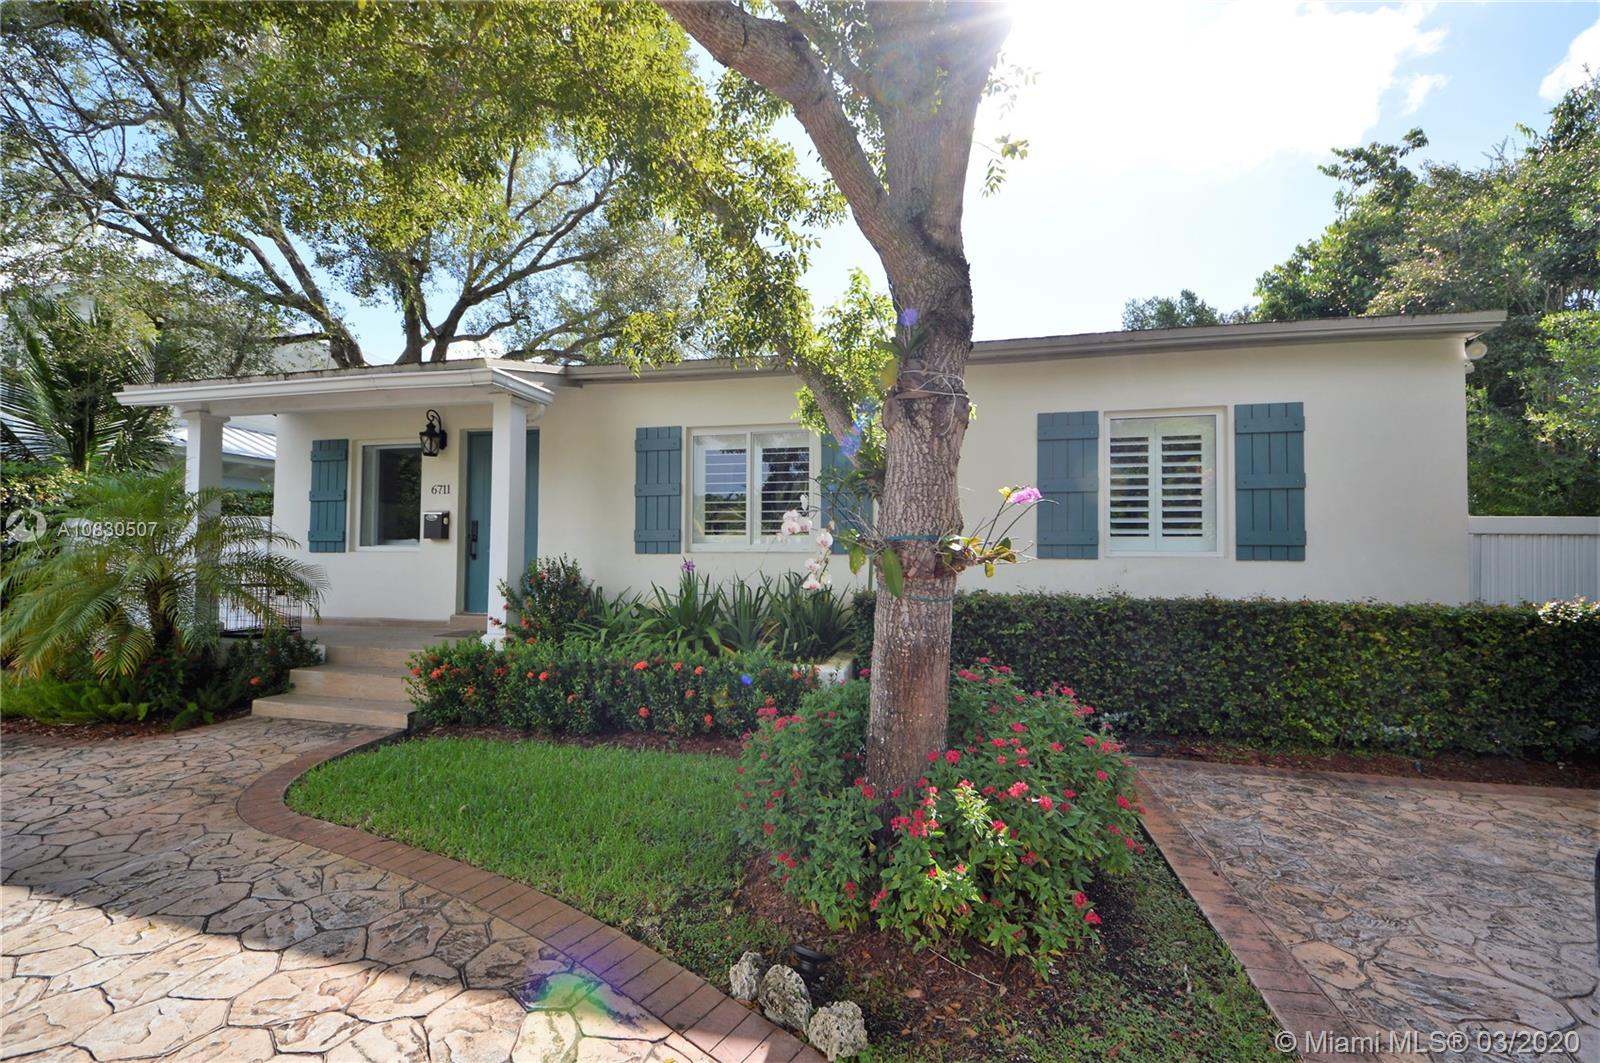 Cozy home in the desirable South Miami area, this house with 5 bedrooms and 3.5 baths was totally remodeled in late 2014. A large family room and convenient porch, relaxing pool and tiki place make it the perfect house for entertaining! This highly desirable area is close to everything including UM, shopping, restaurants, schools, etc. Come see this great home as it won't last!